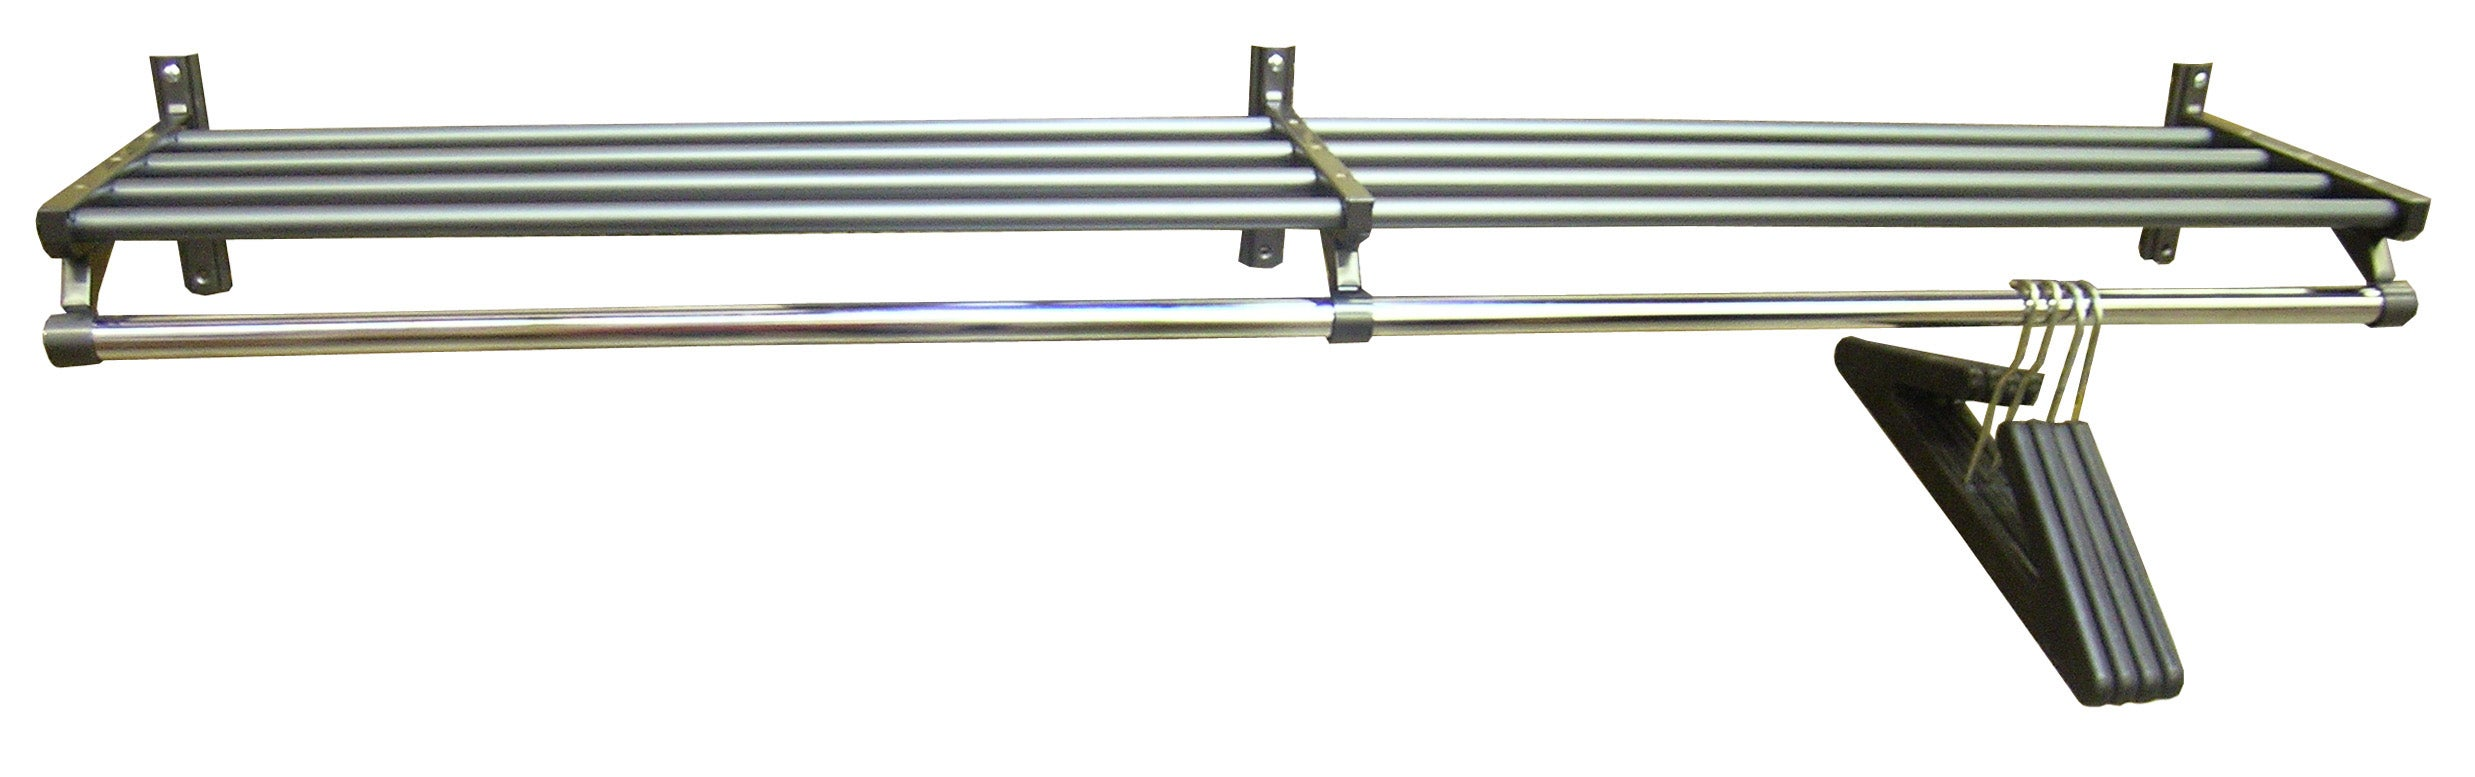 Wall Mounted 60 Inch Grey Coat Rack With Hanger Bar Free